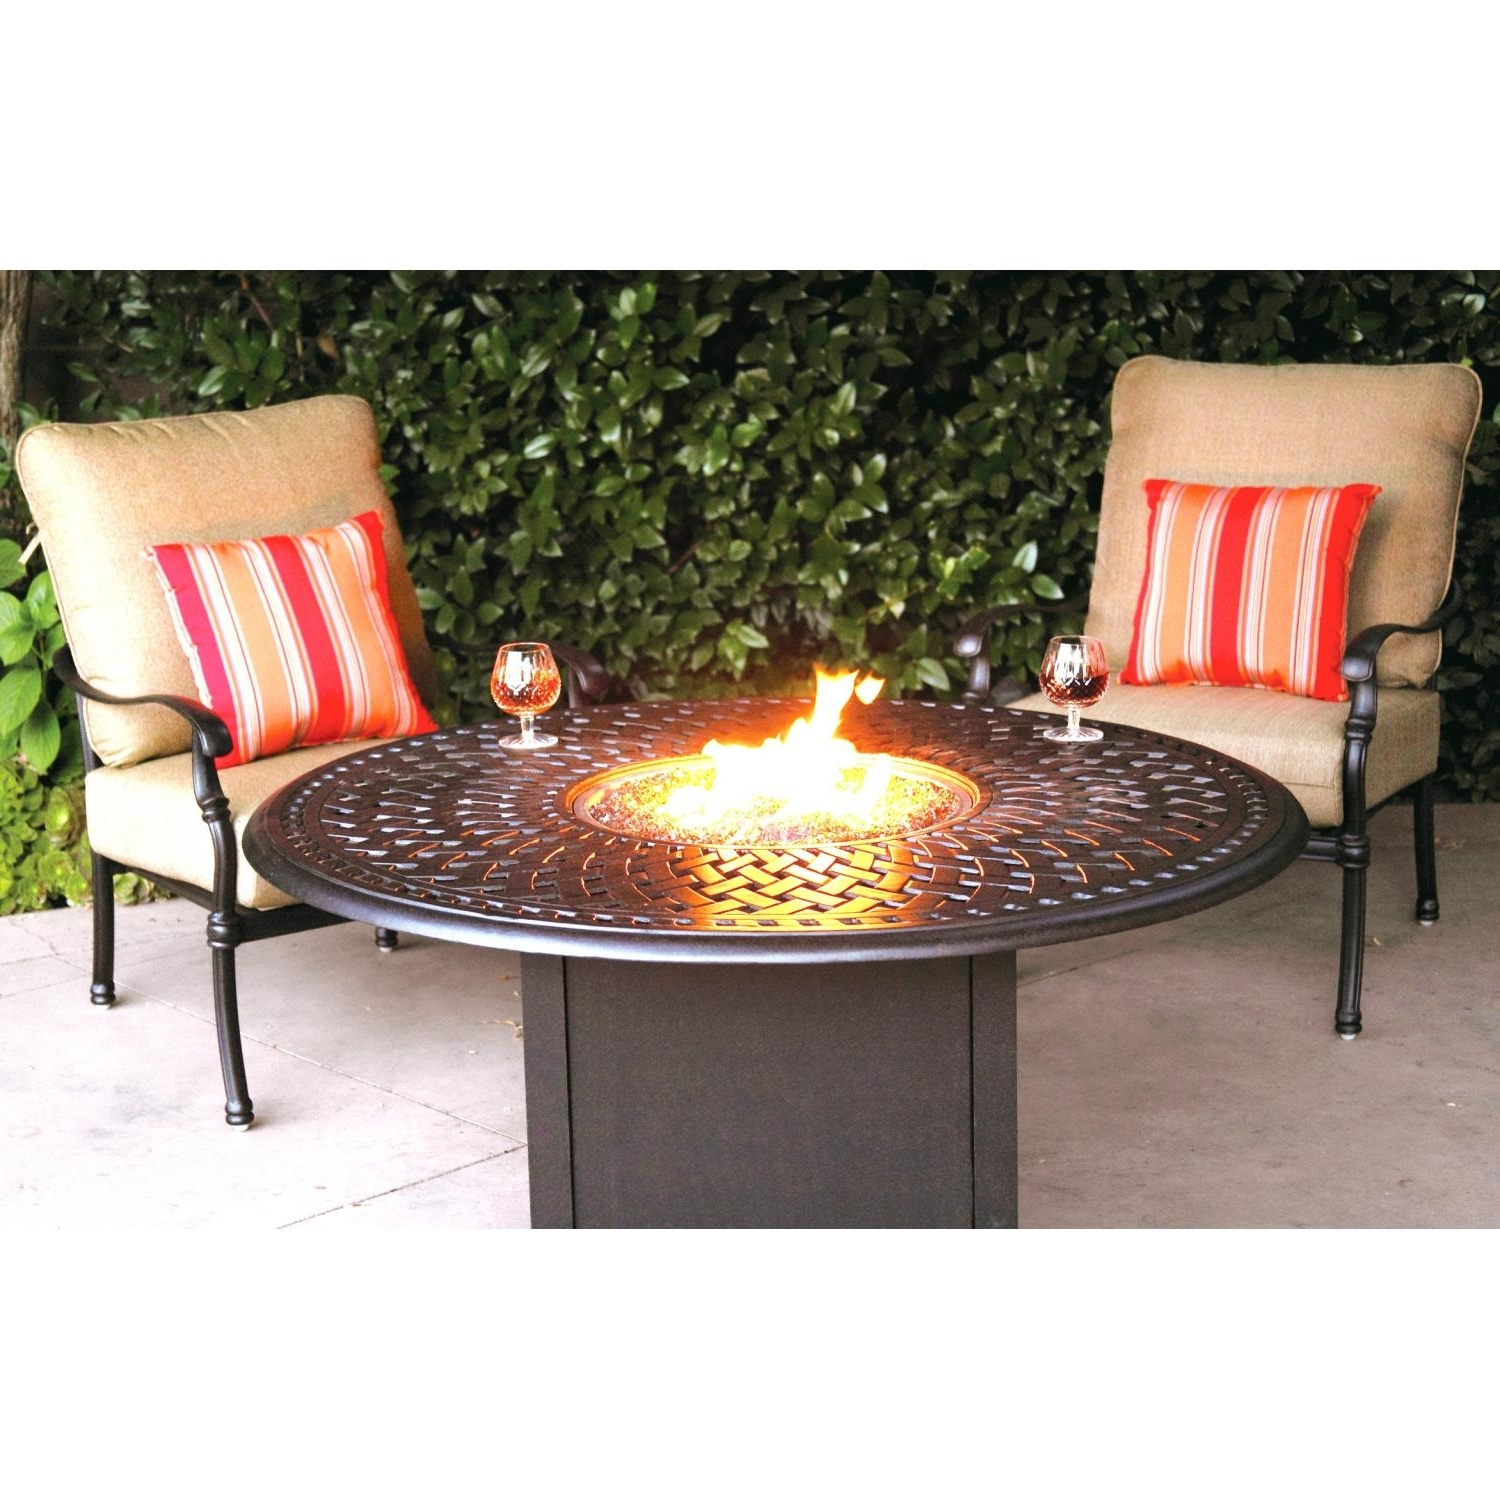 Most Popular Patio Conversation Sets With Gas Fire Pit Pertaining To Darlee Florence 3 Piece Aluminum Patio Fire Pit Seating Set (View 9 of 20)